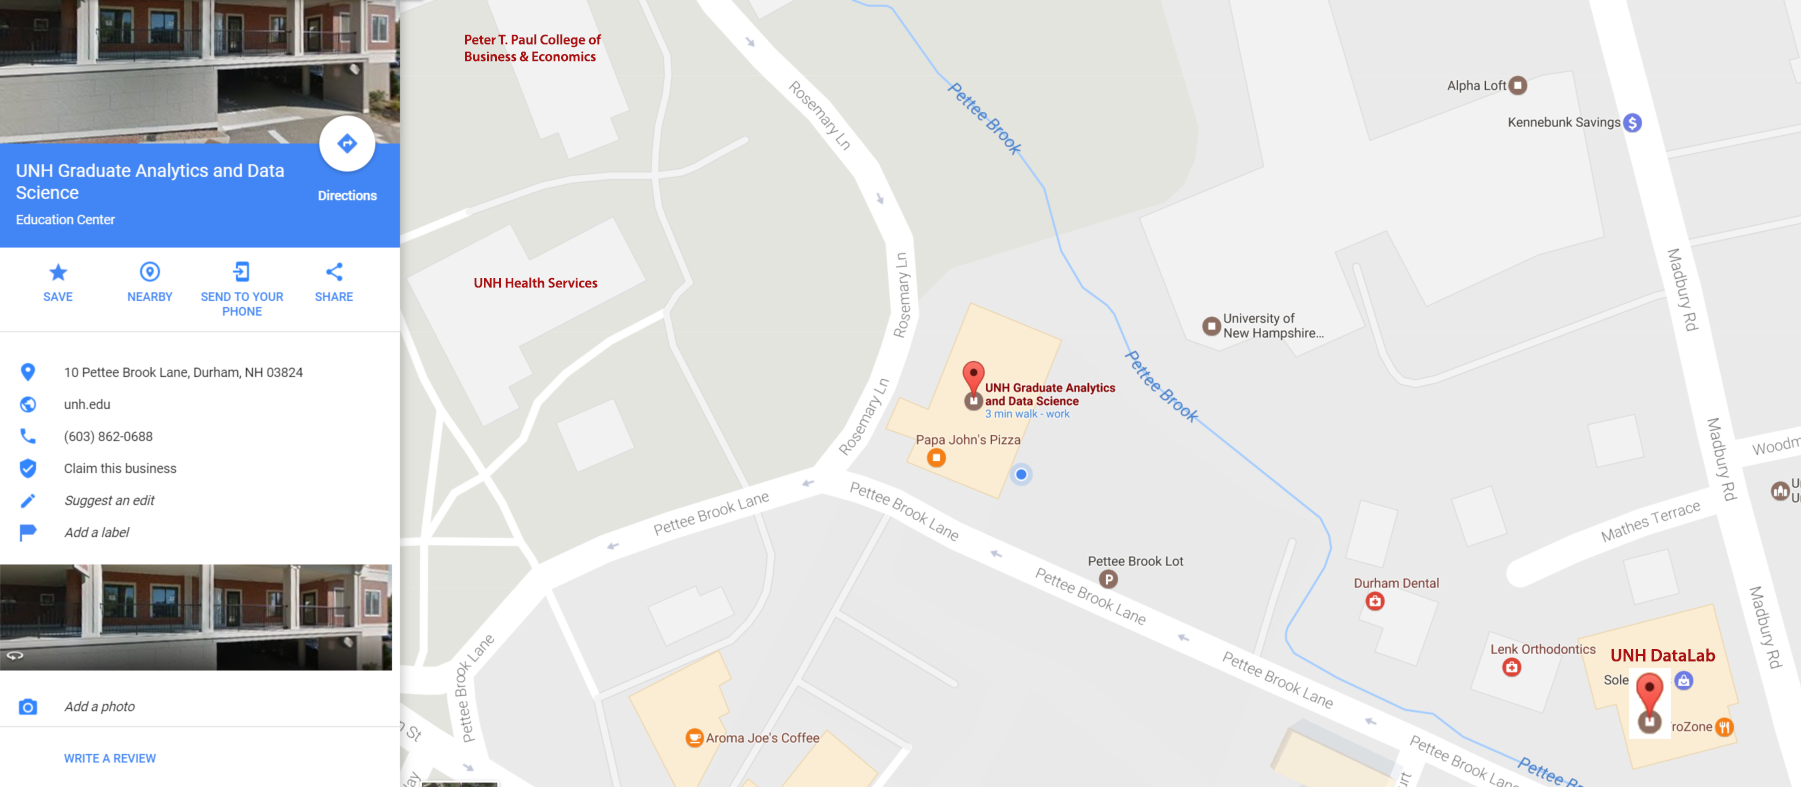 Google Maps image of the loaction of UNH Analytics & Data Science office, classroom, and DataLab